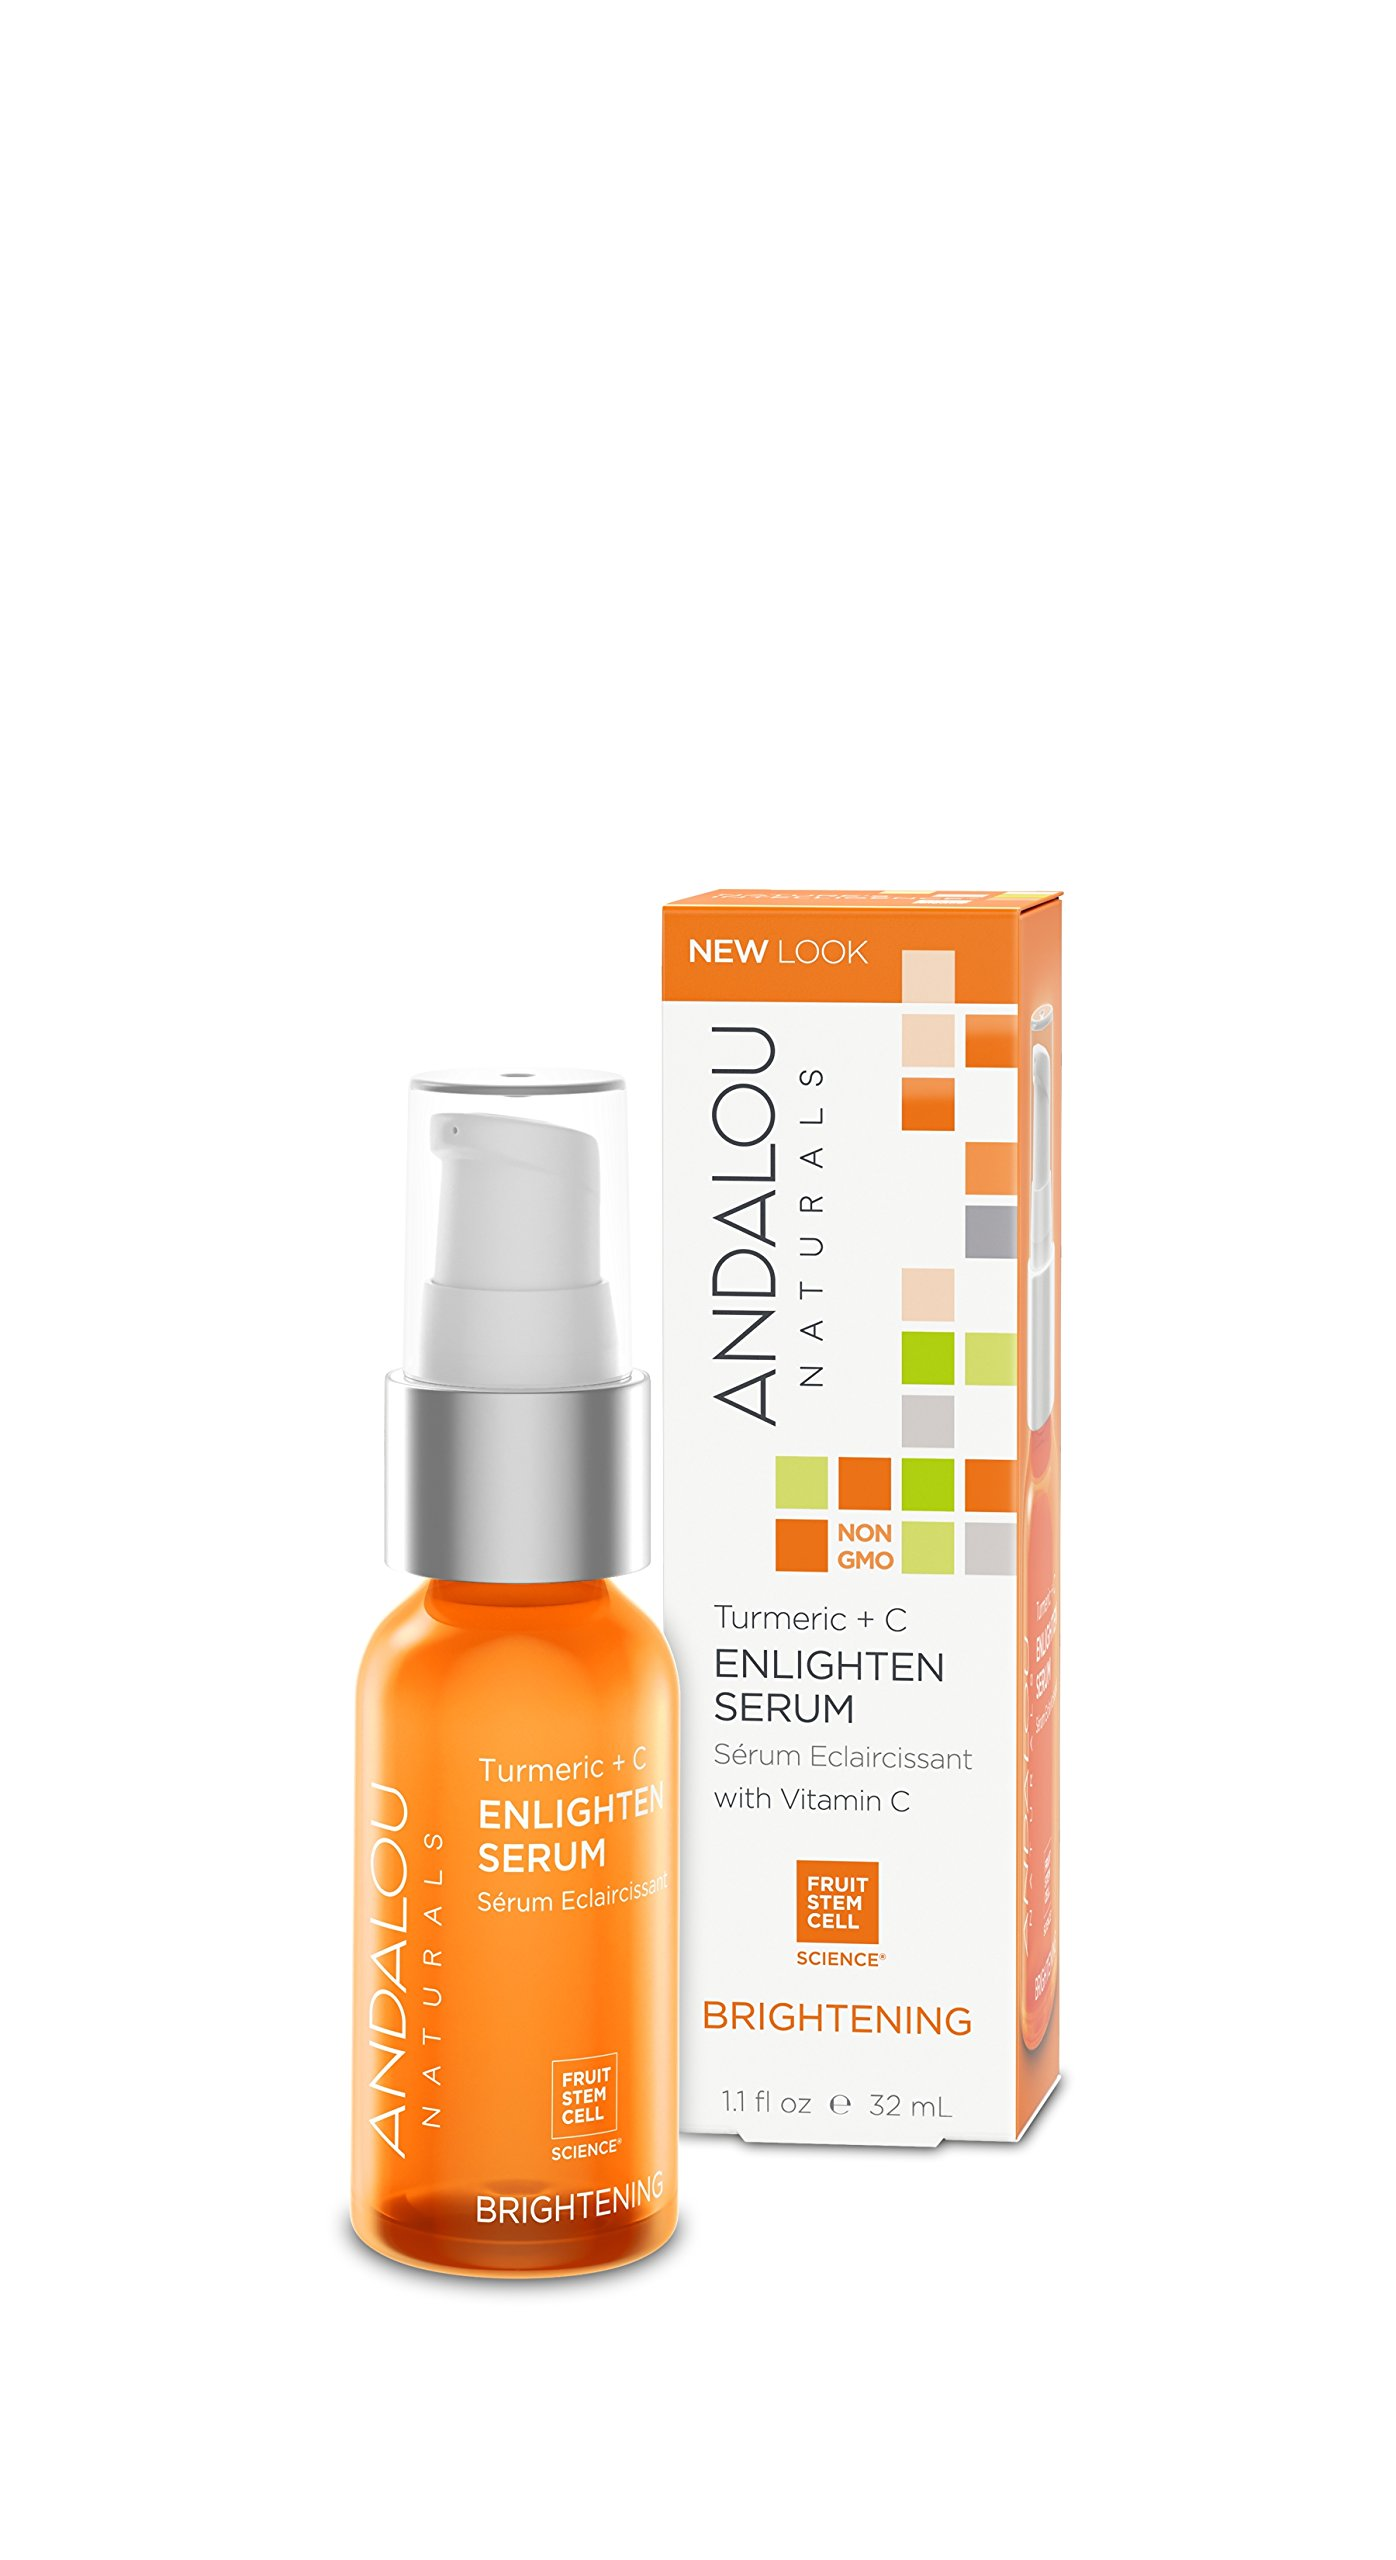 Andalou Naturals Turmeric + C Enlighten Serum, 1.1 oz, Helps Brighten, Firm, Even Skin Tone With Vitamin C for Healthy Looking Glow by Andalou Naturals (Image #7)